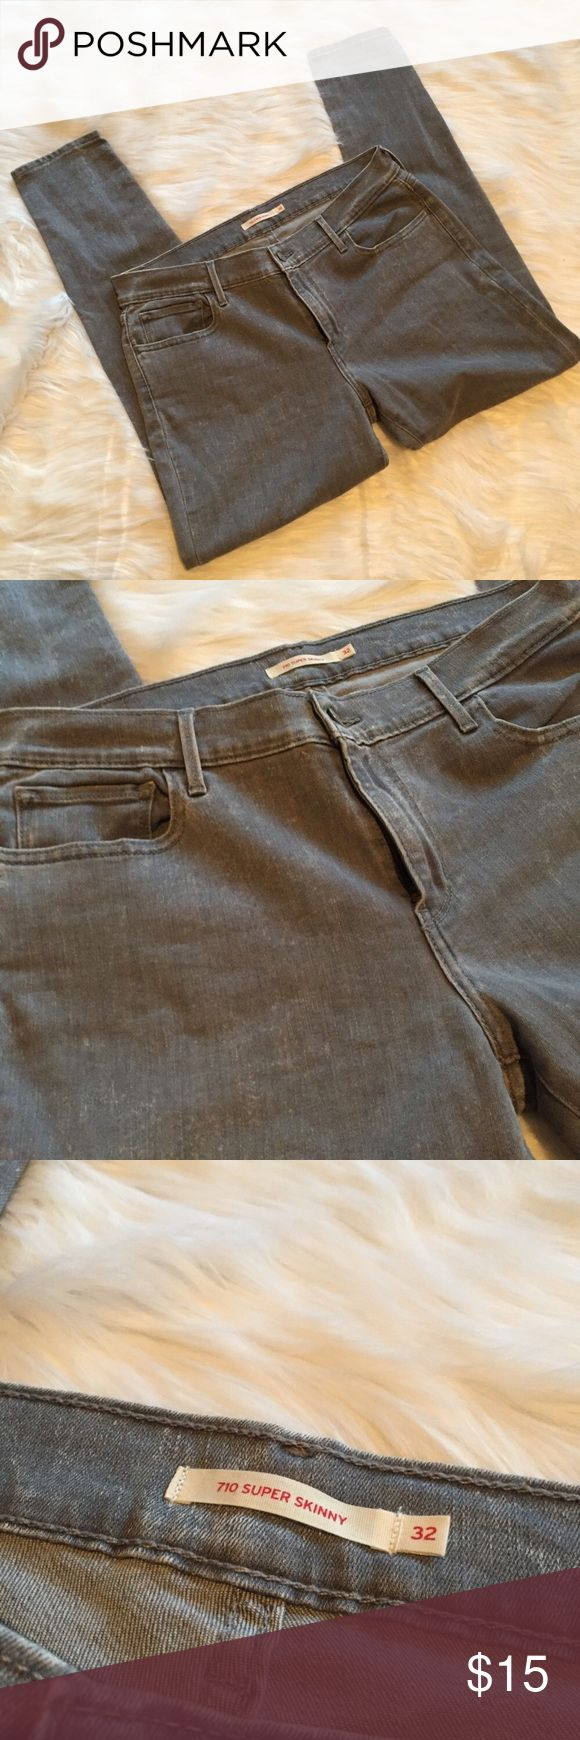 {Levi's} Super Skinny Grey Wash Denim Used in excellent condition. No Trades / No PayPal /  Smoke-Free Home / Ask Questions! / No Model Requests Please / Like what you see but dont like the price? MAKE ME AN OFFER! Levi's Jeans Skinny